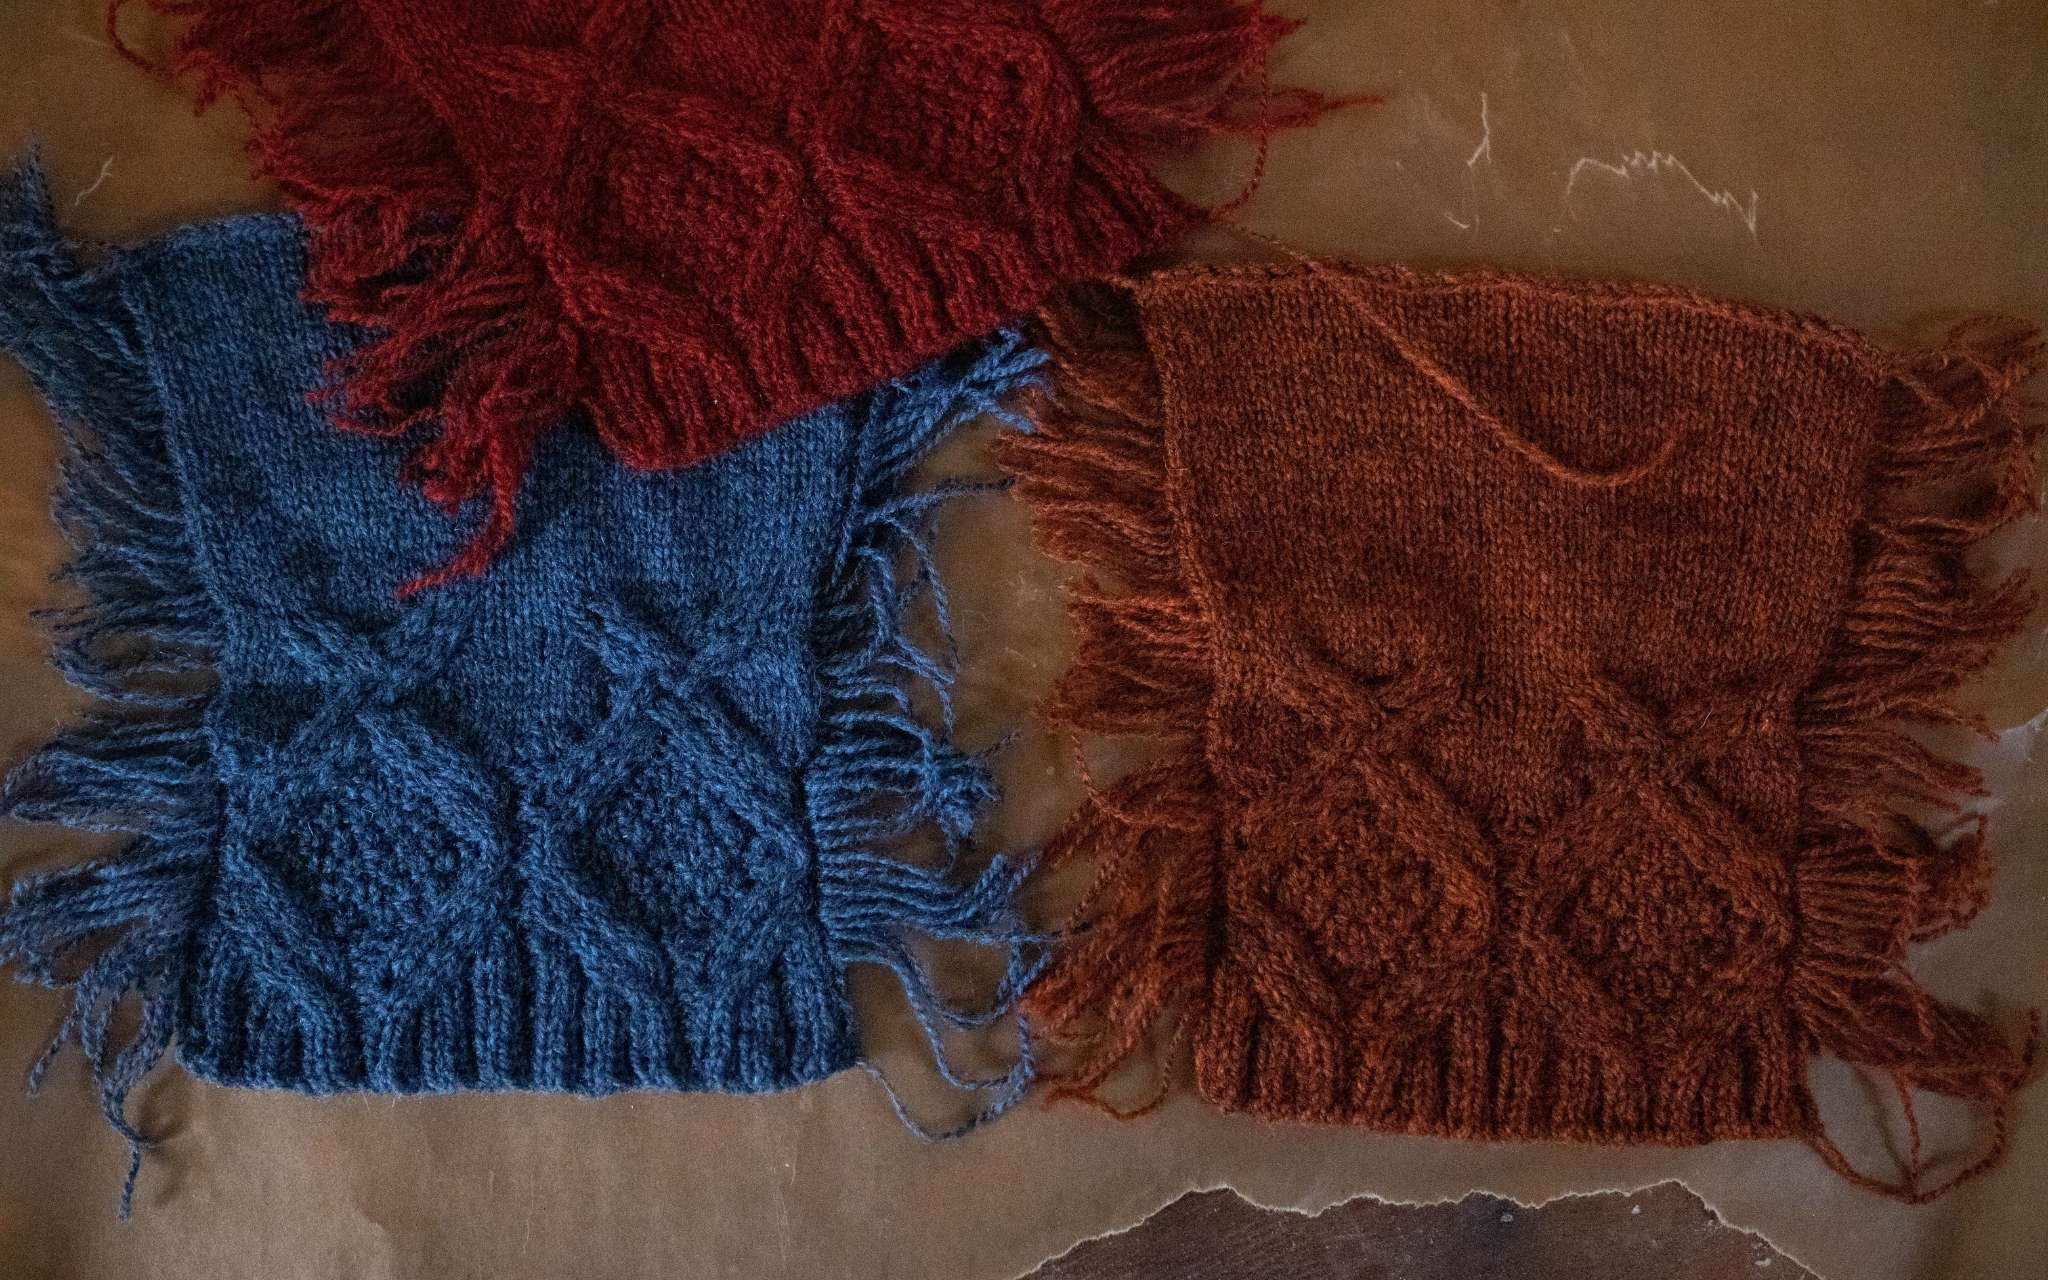 Blue and orange cabled swatches lie next to each other on a flat surface, with a red cabled swatch overlapping slightly at the top.